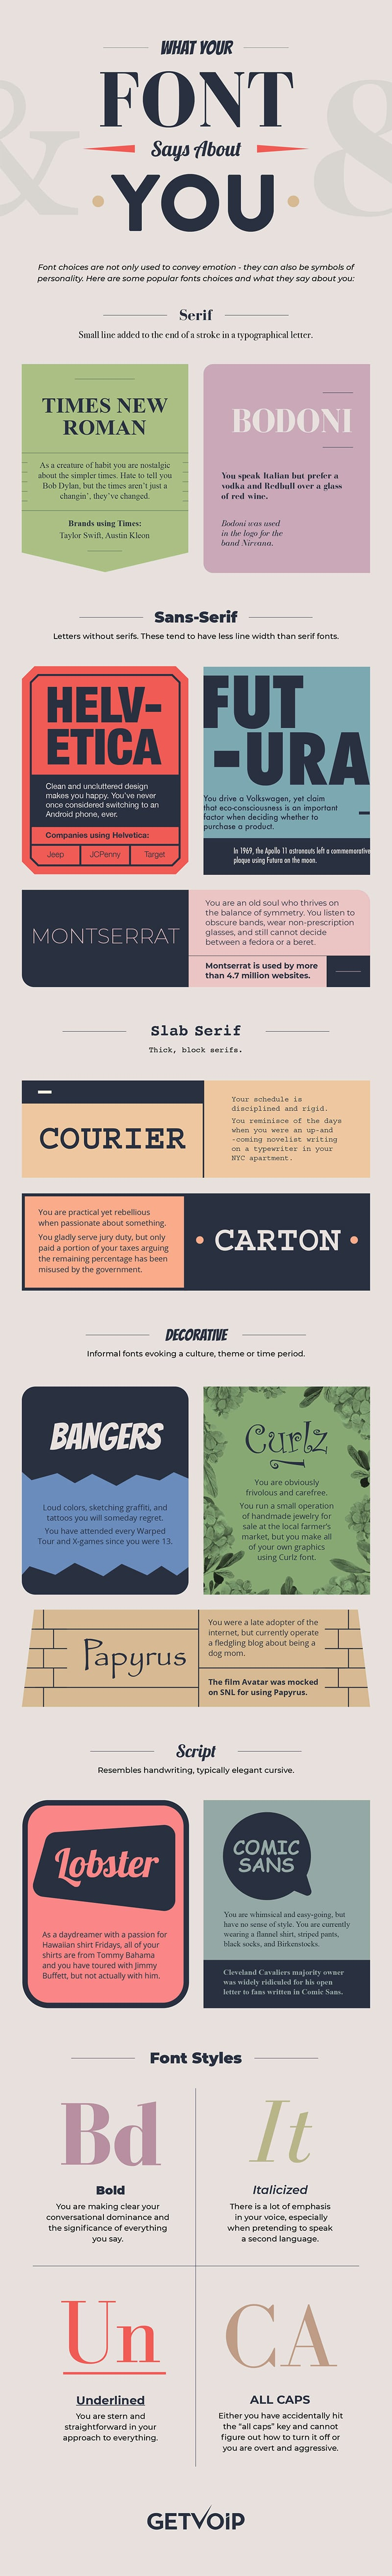 Guide To Font Selection